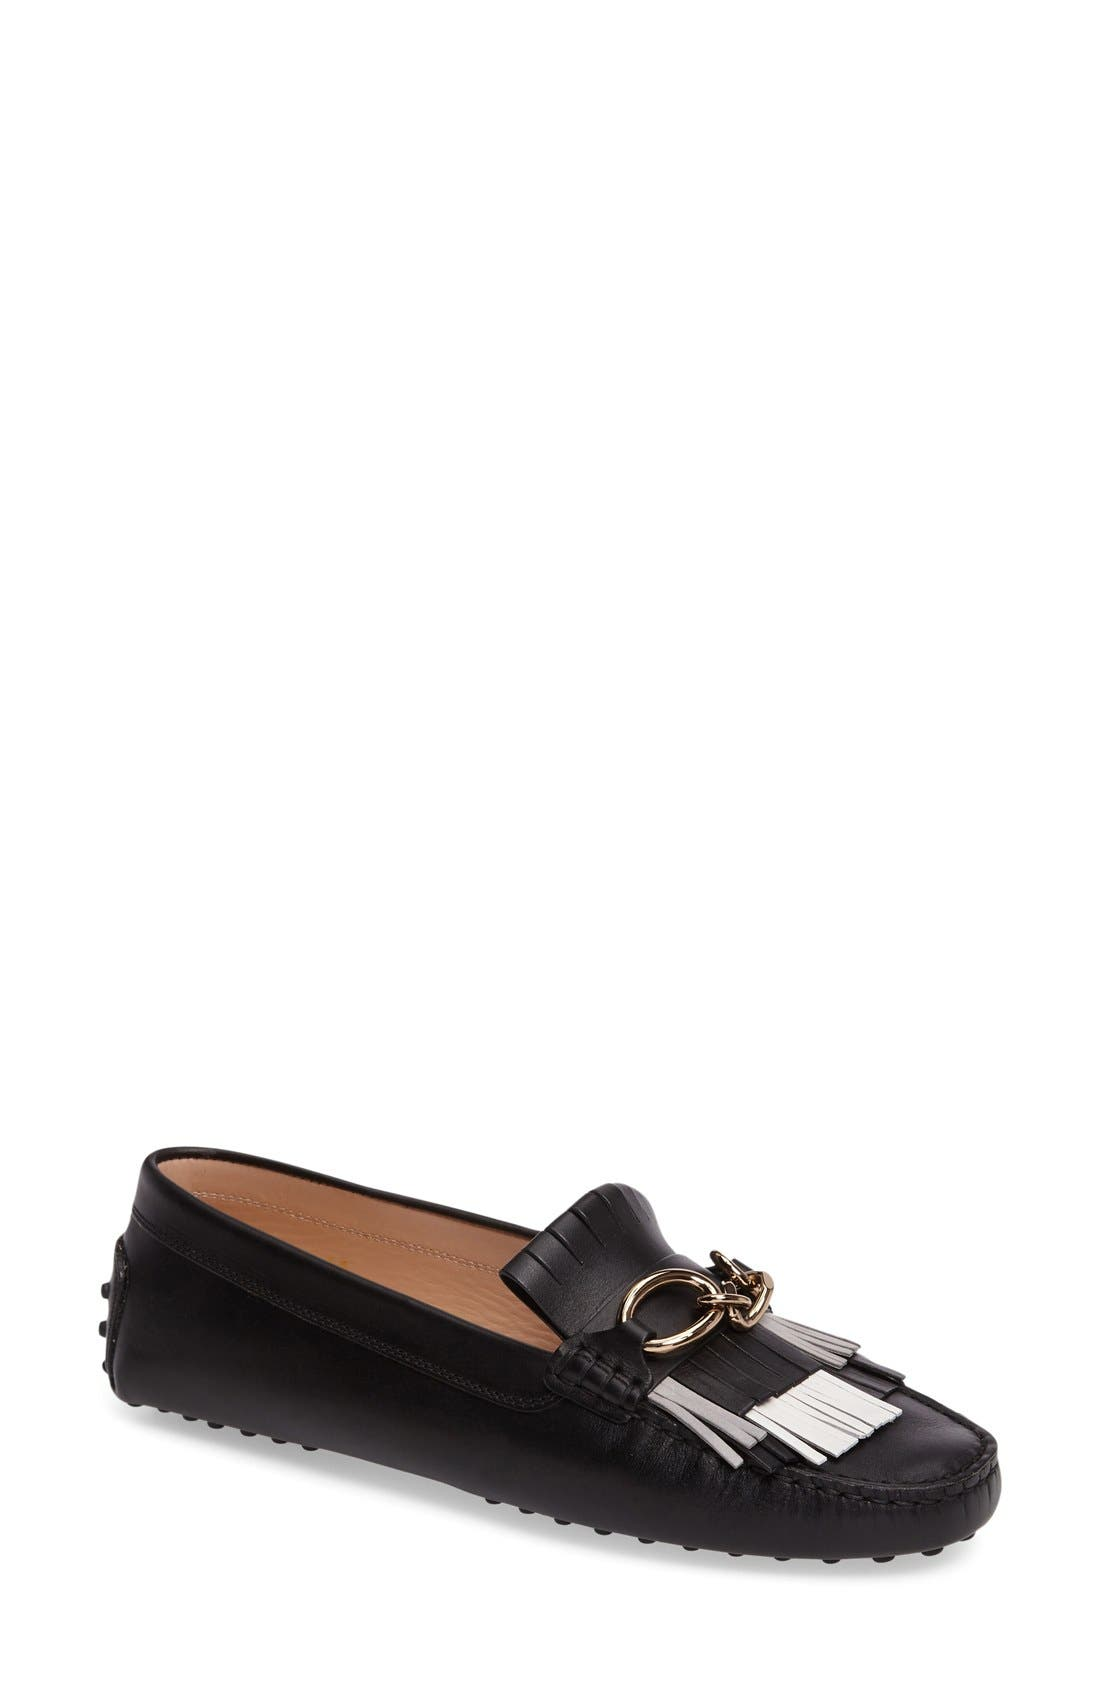 Alternate Image 1 Selected - Tod's Gommini Driving Moccasin (Women)